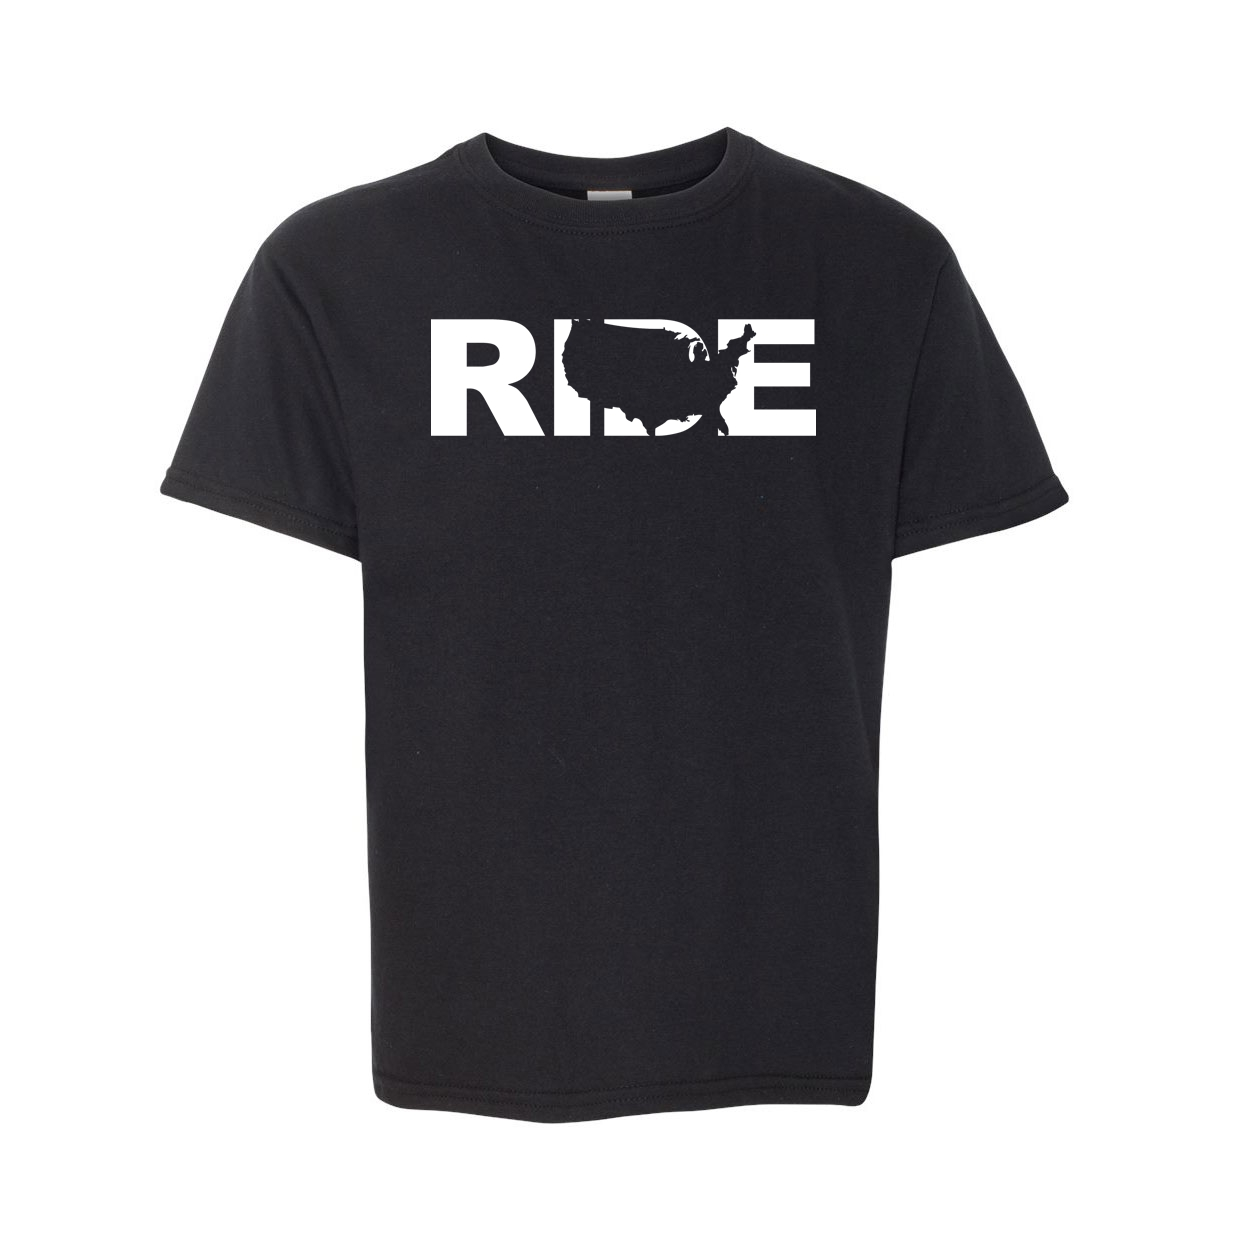 Ride United States Classic Youth T-Shirt Black (White Logo)